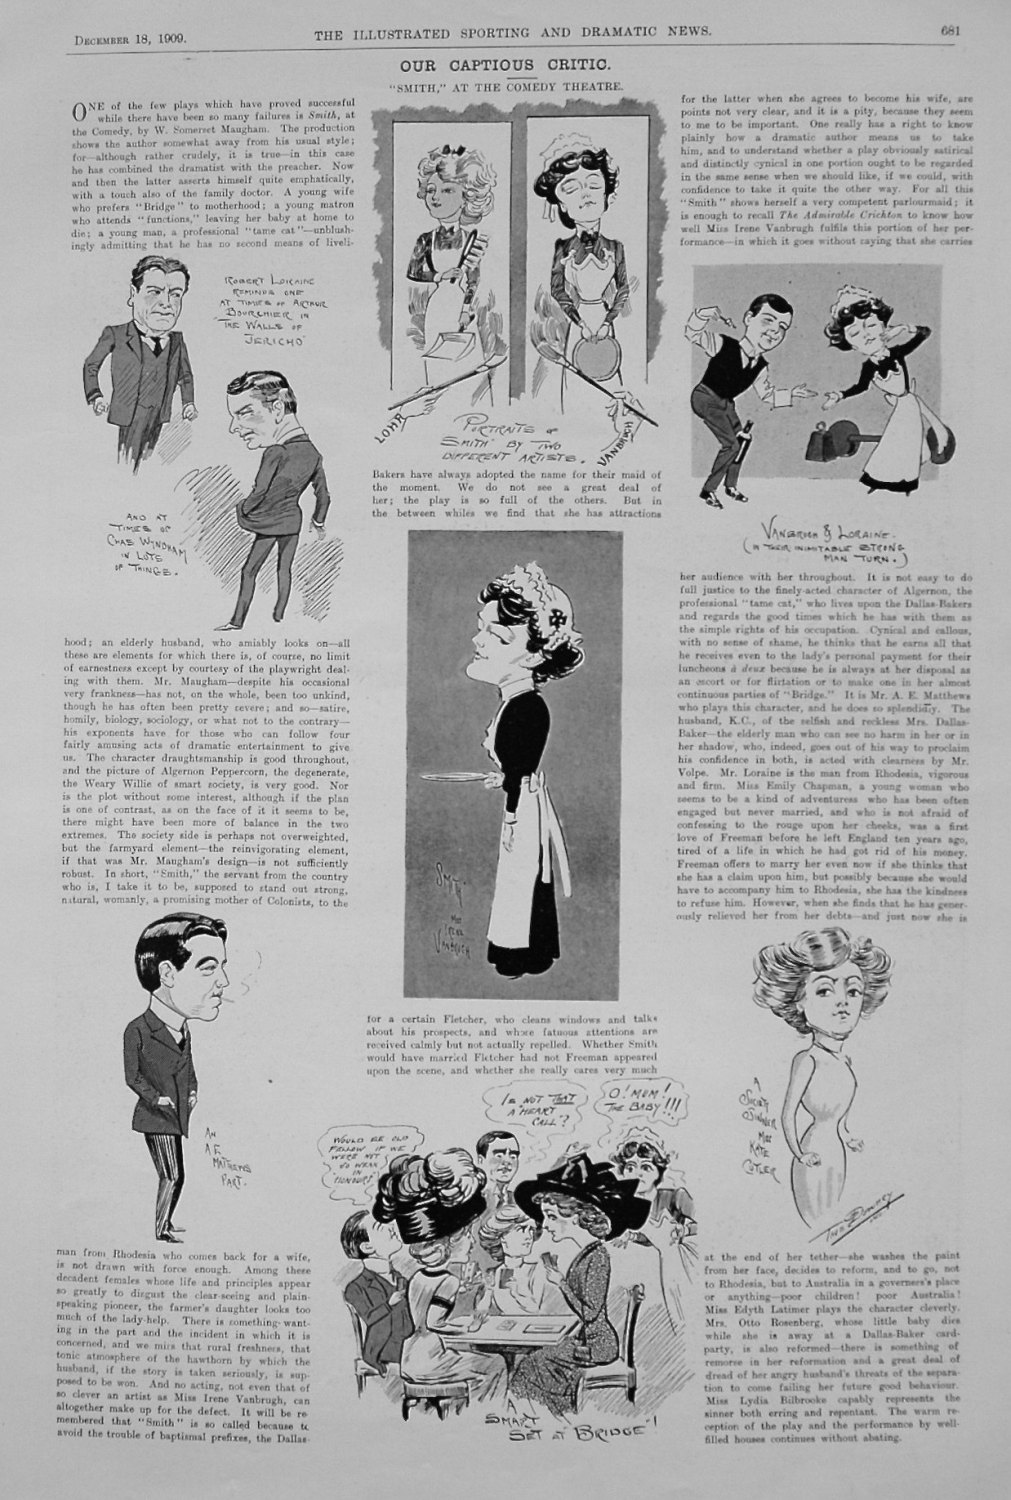 Our Captious Critic. December 18th 1909